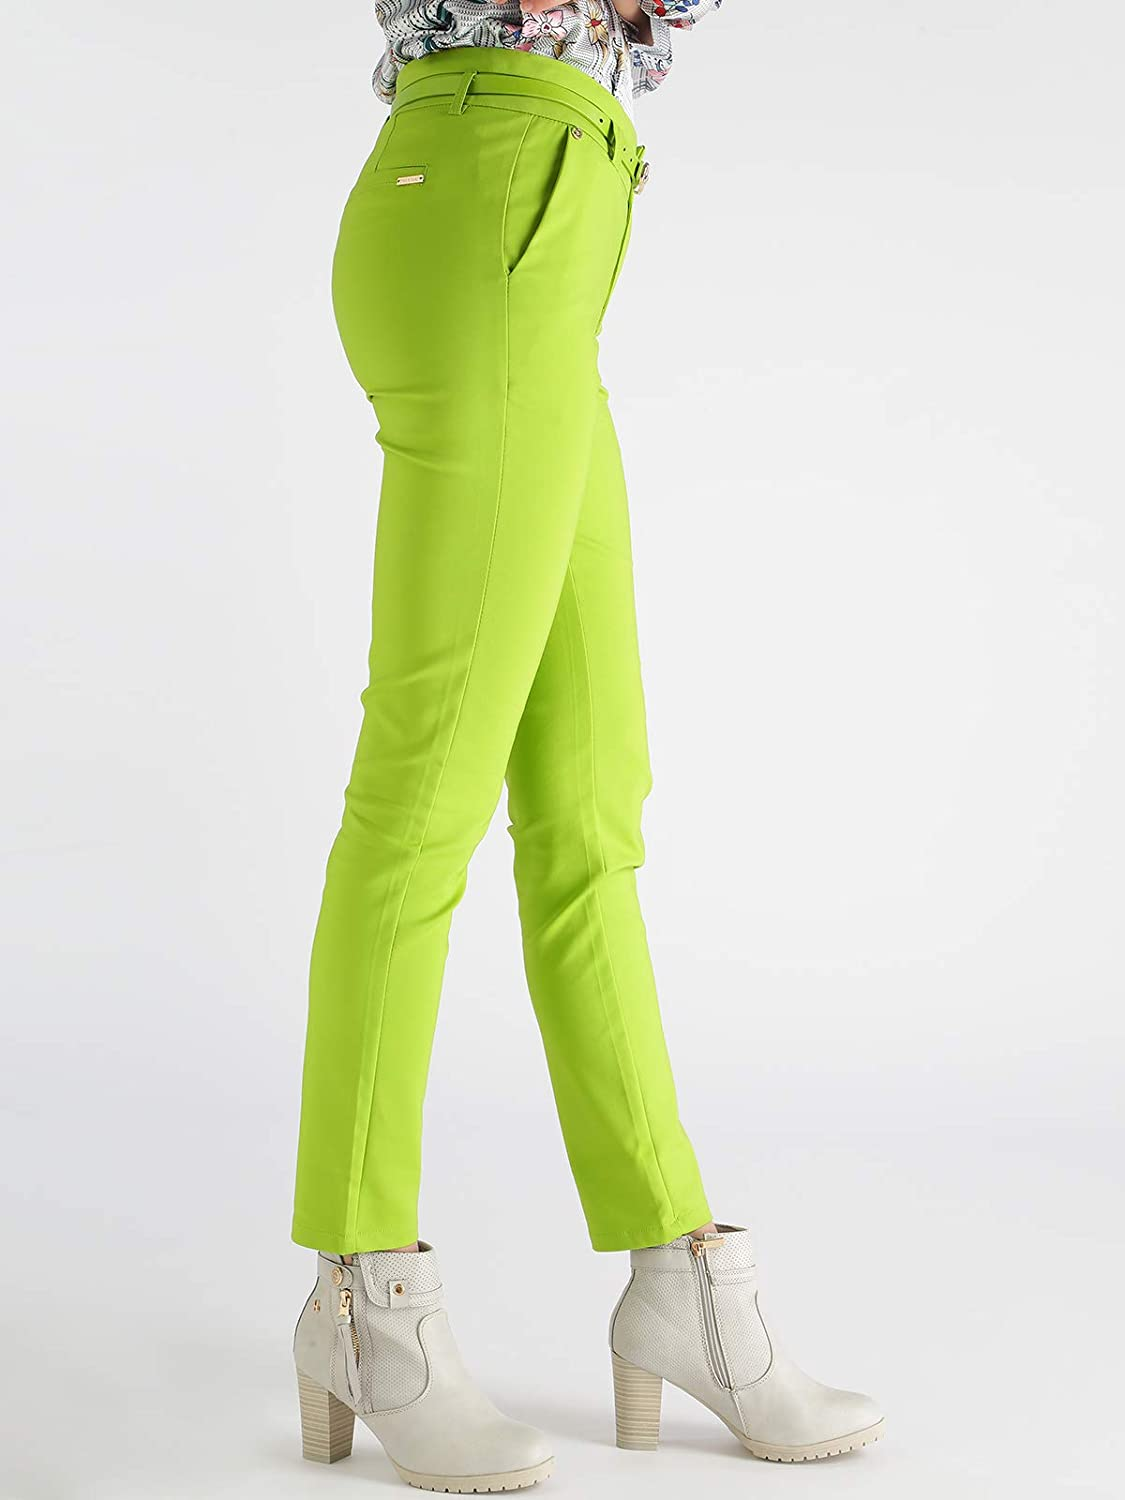 69ec2144f2bb FREESIA Pantaloni a sigaretta con cintura - verde acido: Amazon.it:  Abbigliamento